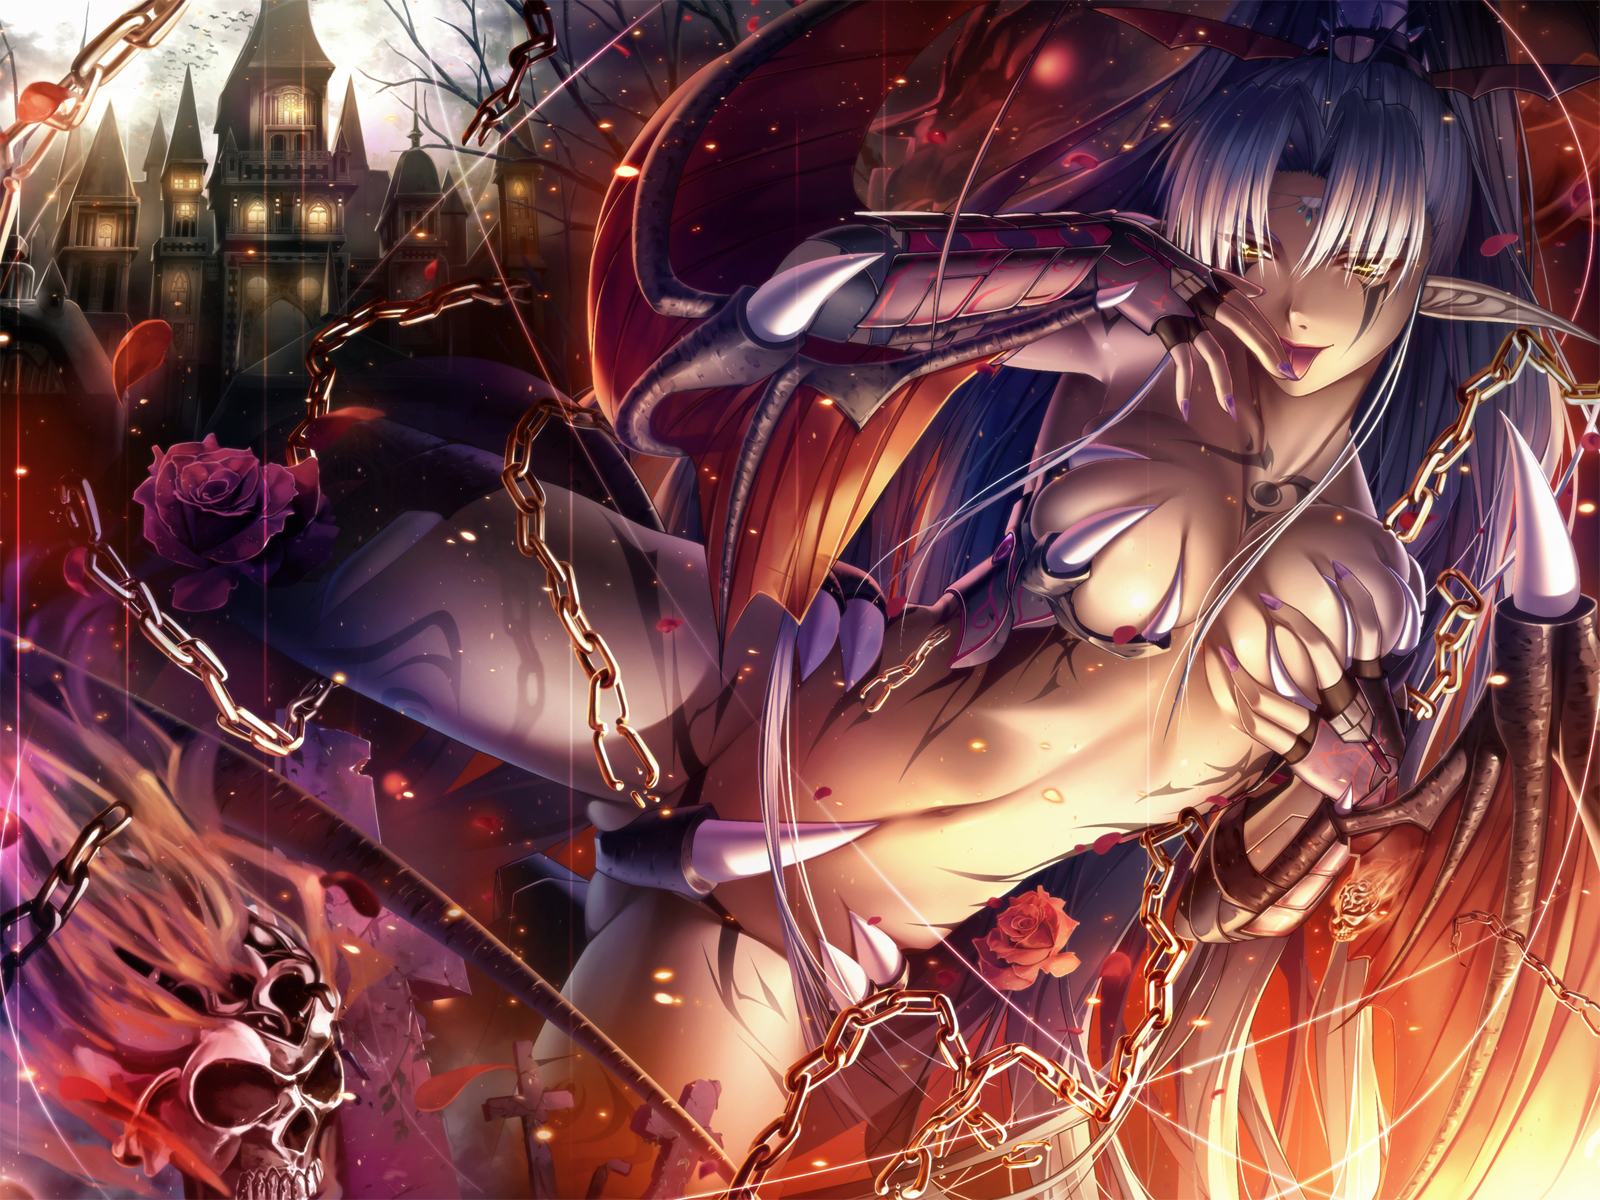 Demonic sexy wallpapers hd smut download